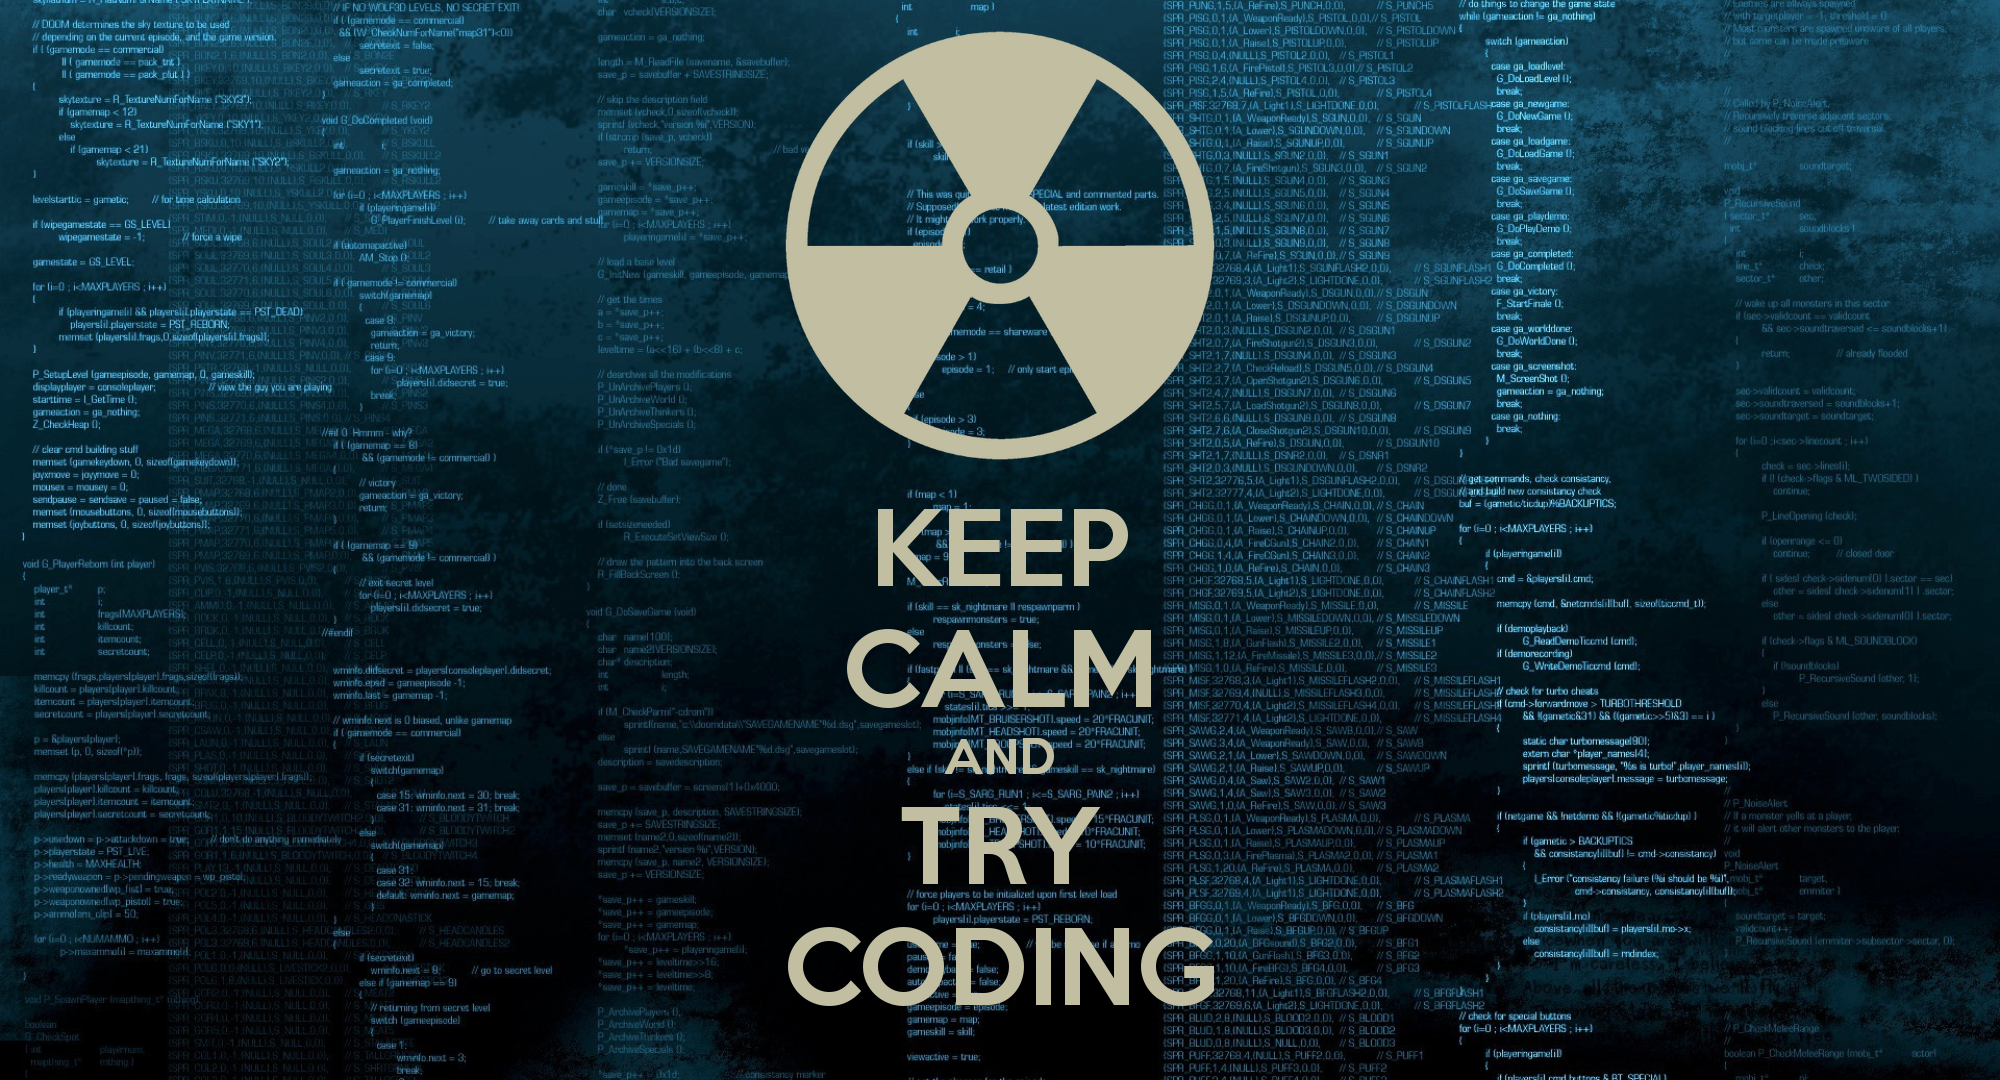 Keep Calm and Try Coding